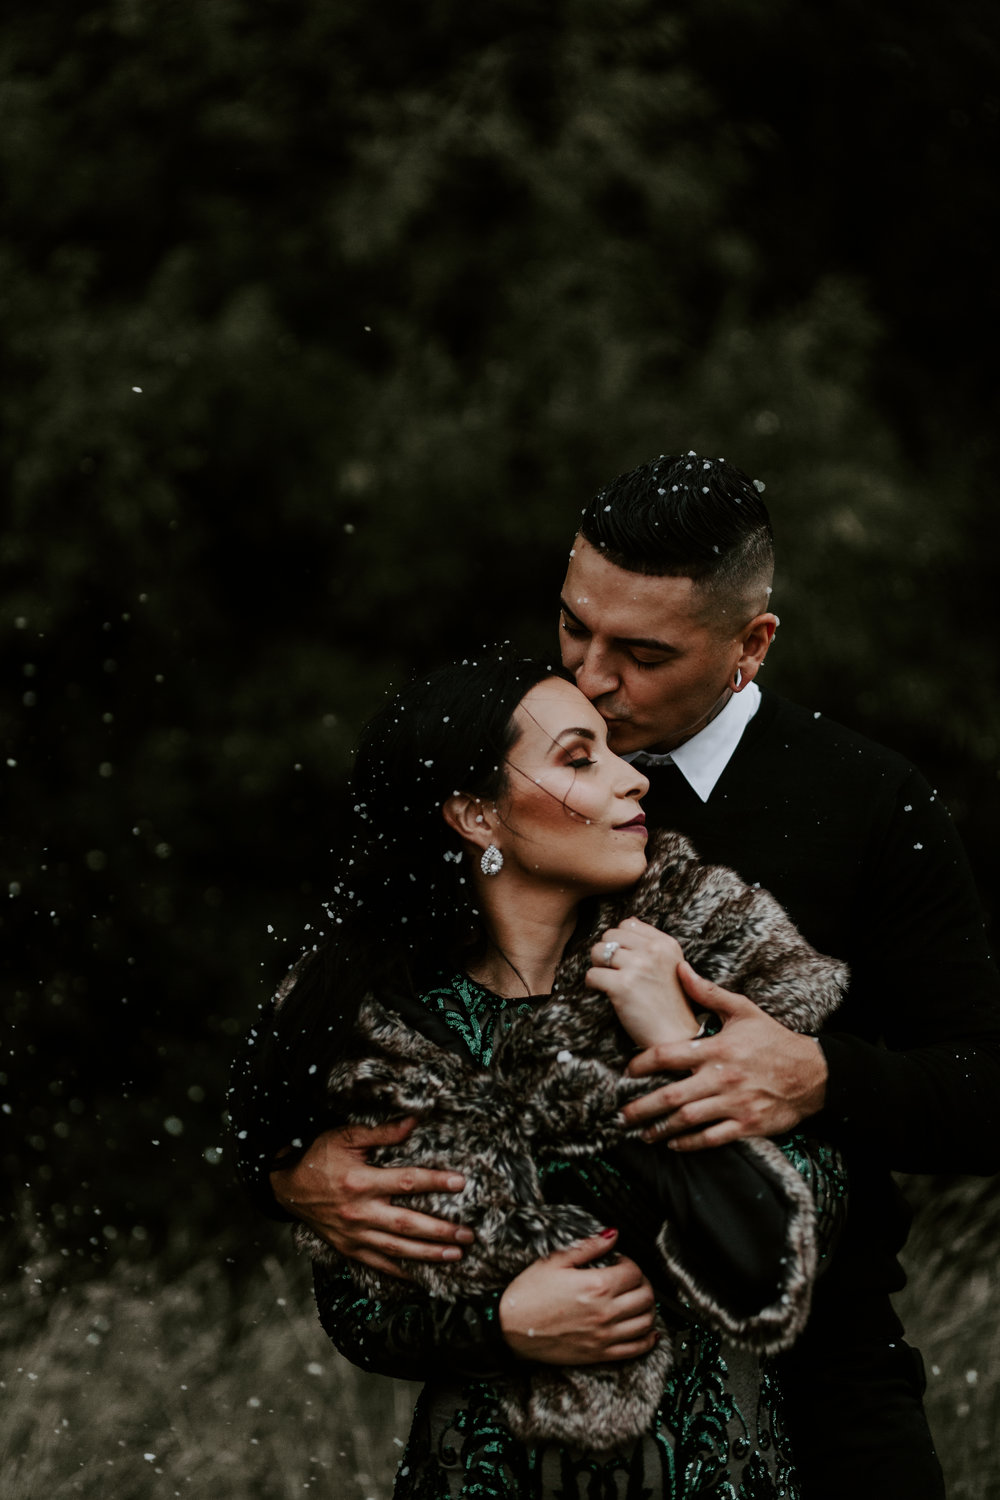 Winter-Fall Elopement- Meme Urbane Photography photos-91.jpg